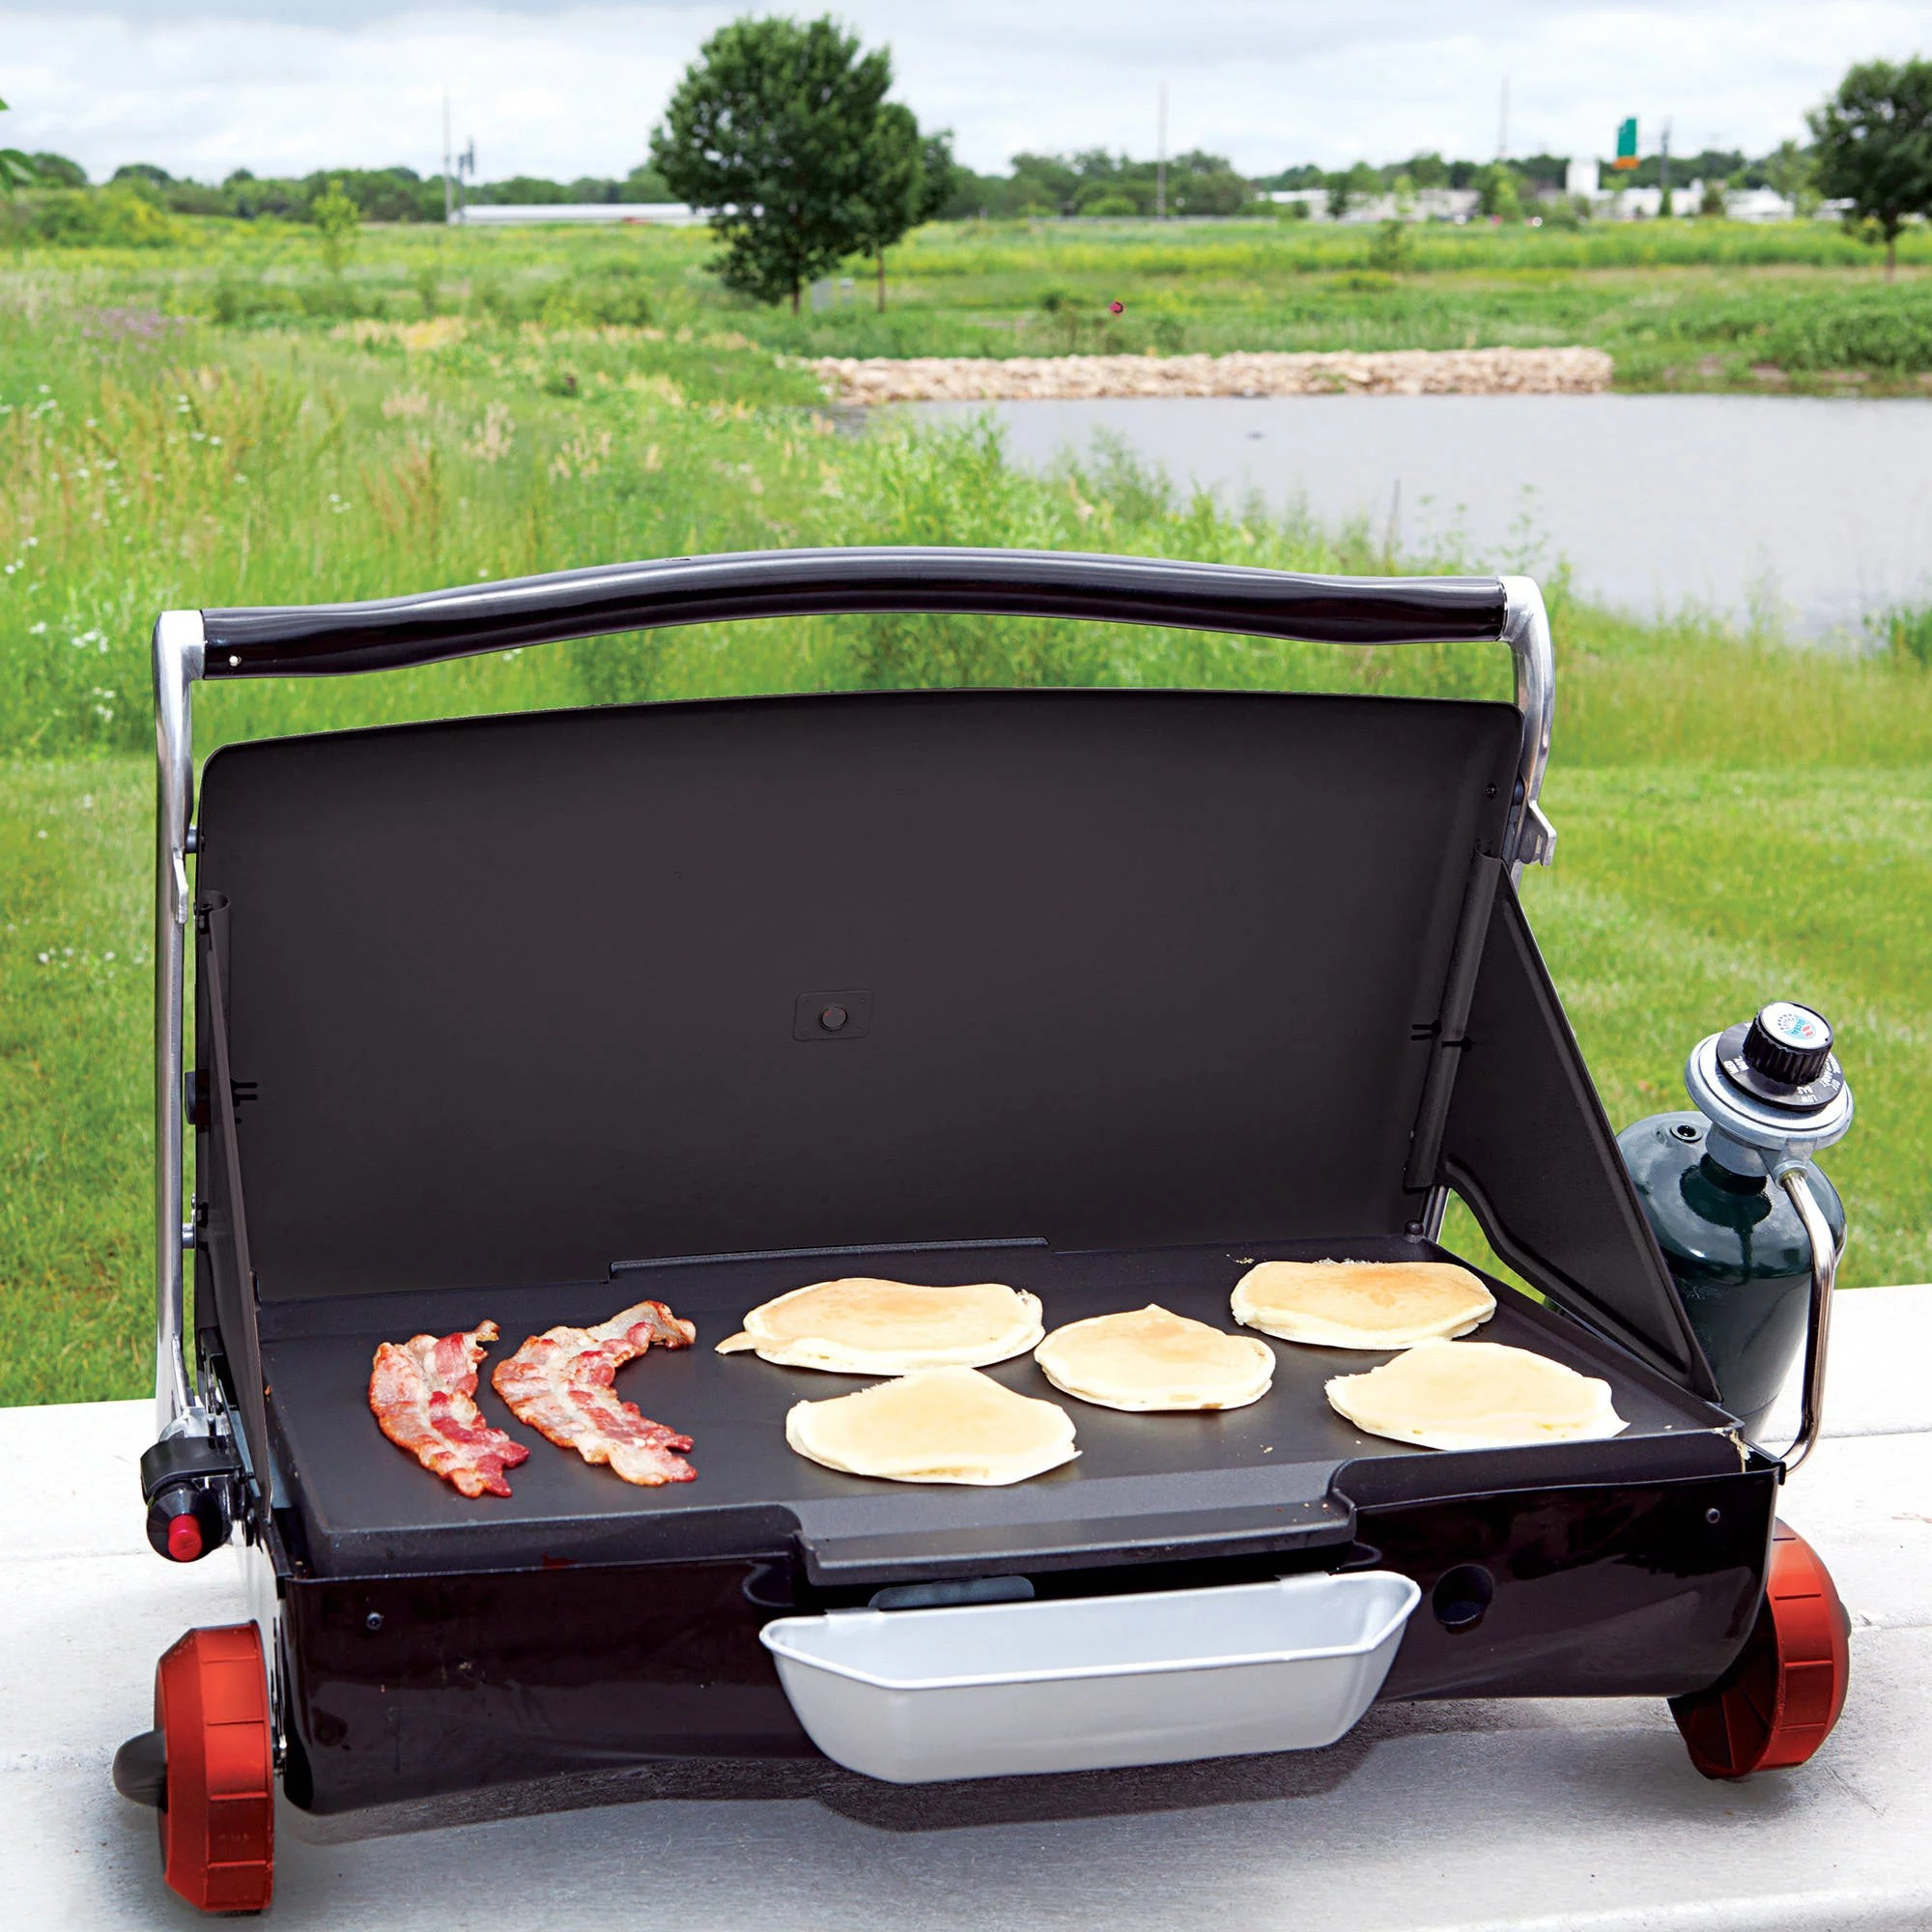 Grill Camping George Foreman Camp And Tailgate Portable Gas Grill